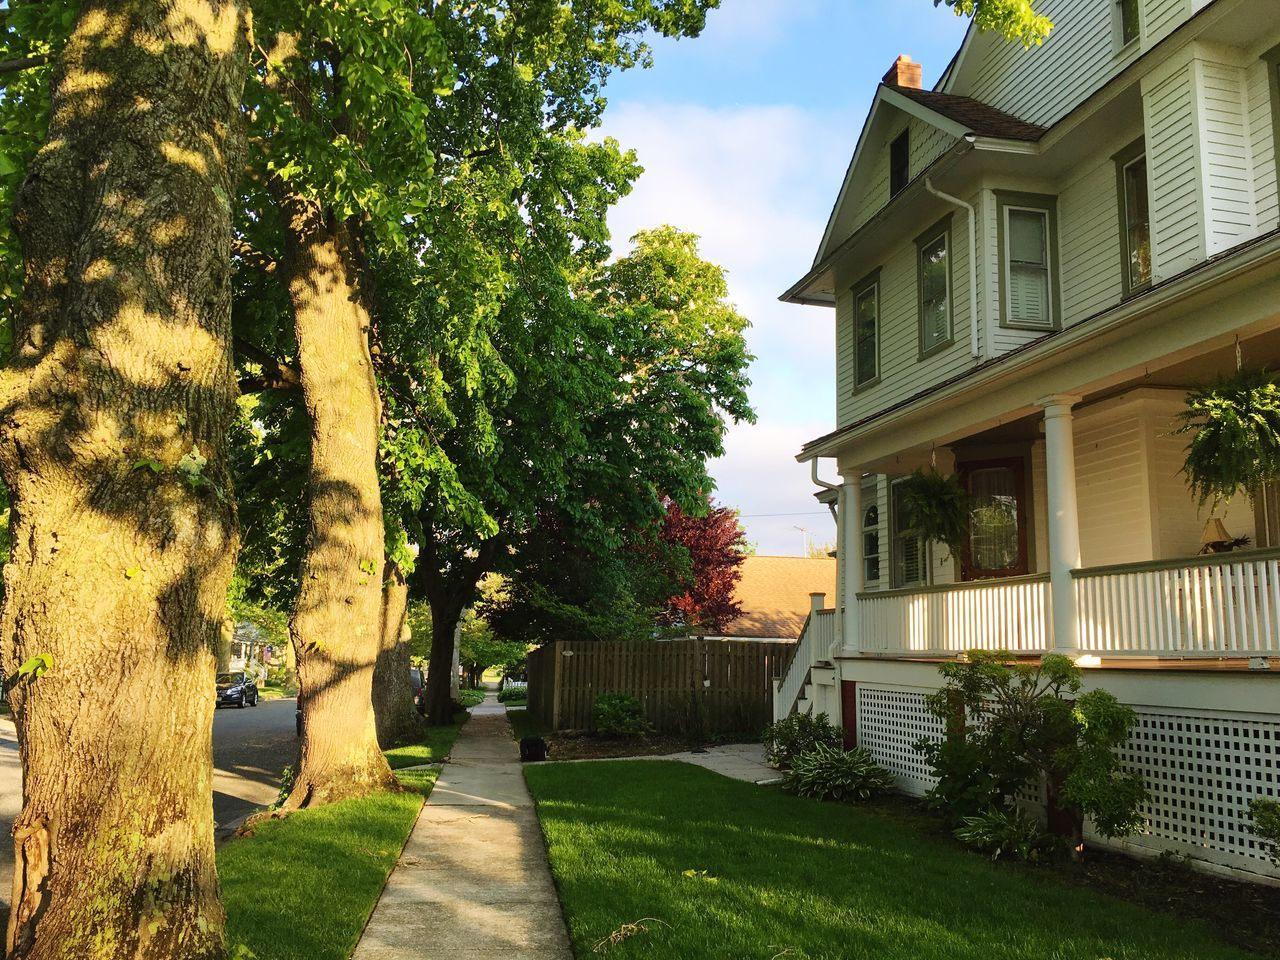 tree, architecture, building exterior, house, built structure, grass, outdoors, growth, no people, plant, nature, day, sky